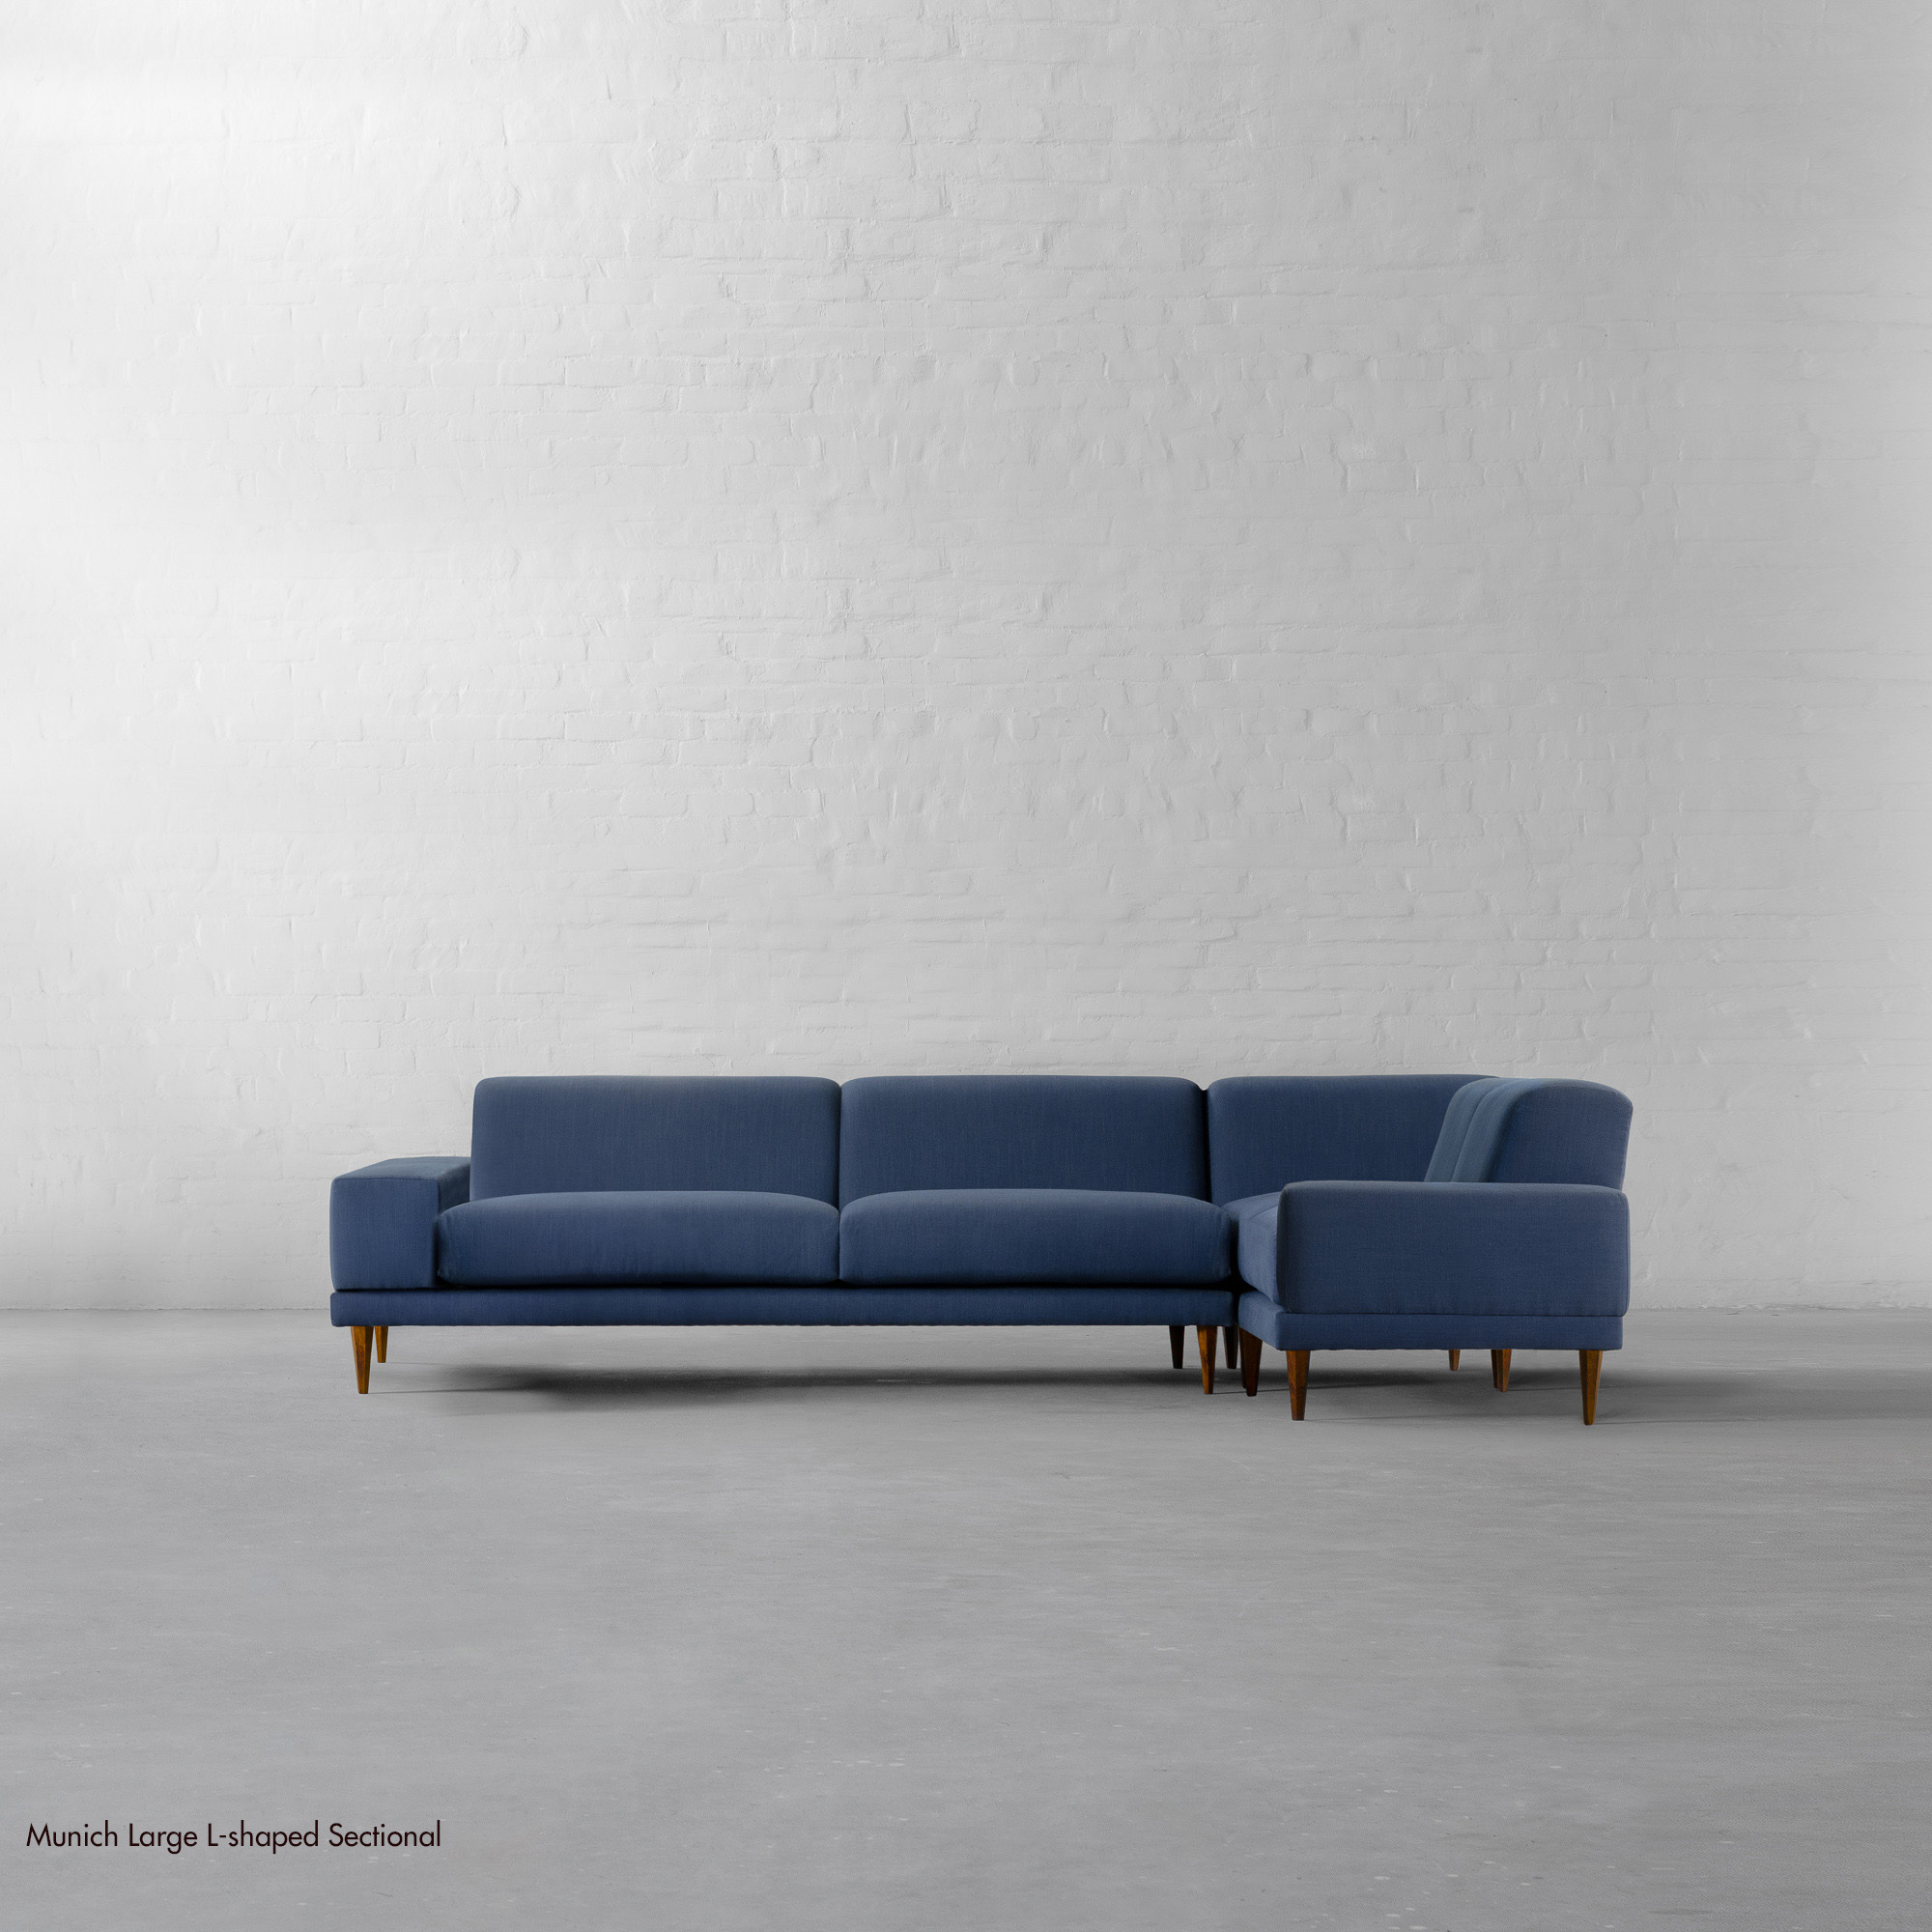 Large L-shaped Sectional - Munich